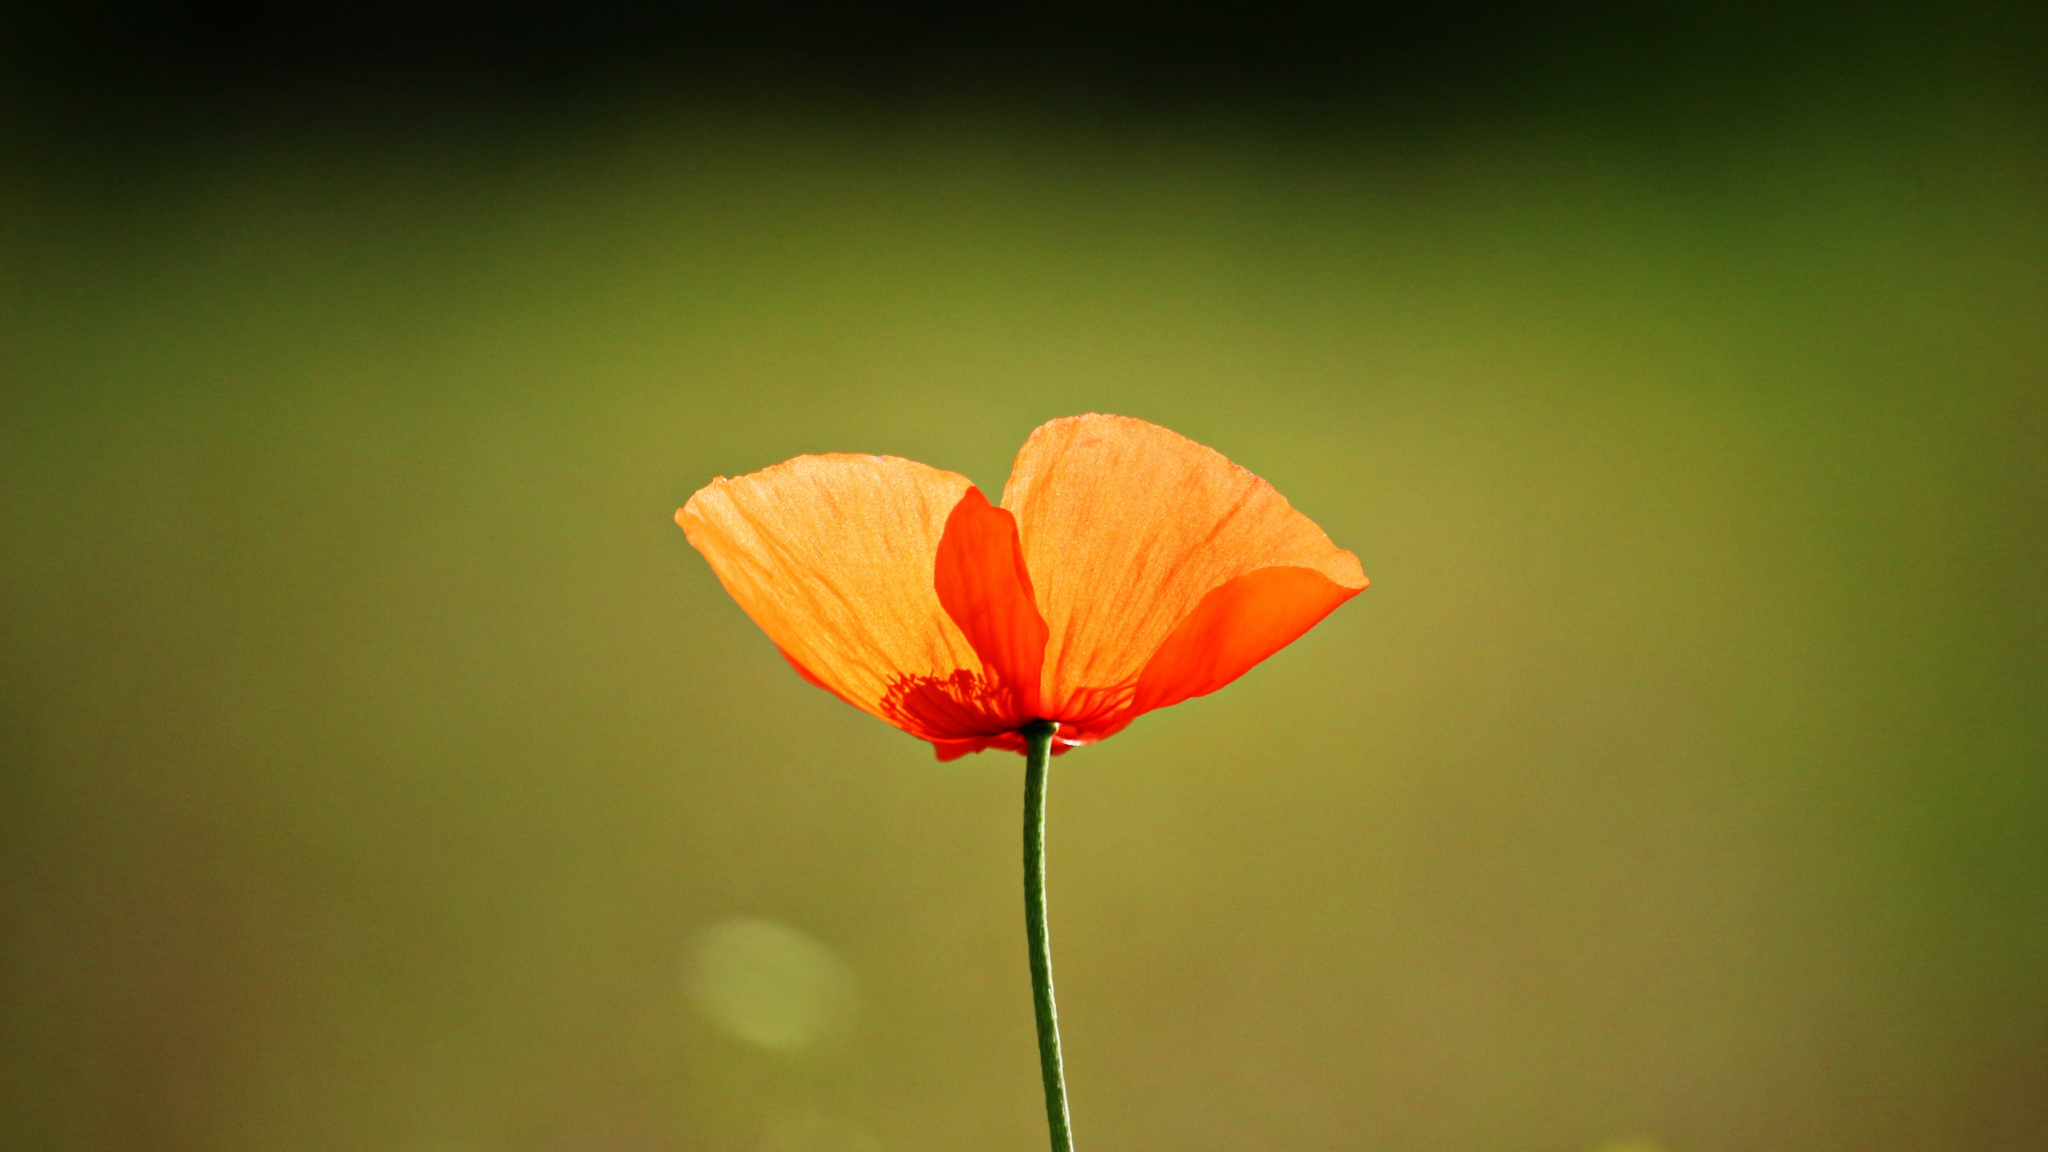 Samsung Galaxy S4 Wallpapers Hd Download Download 2048x1152 Wallpaper Single Flower Orange Poppy